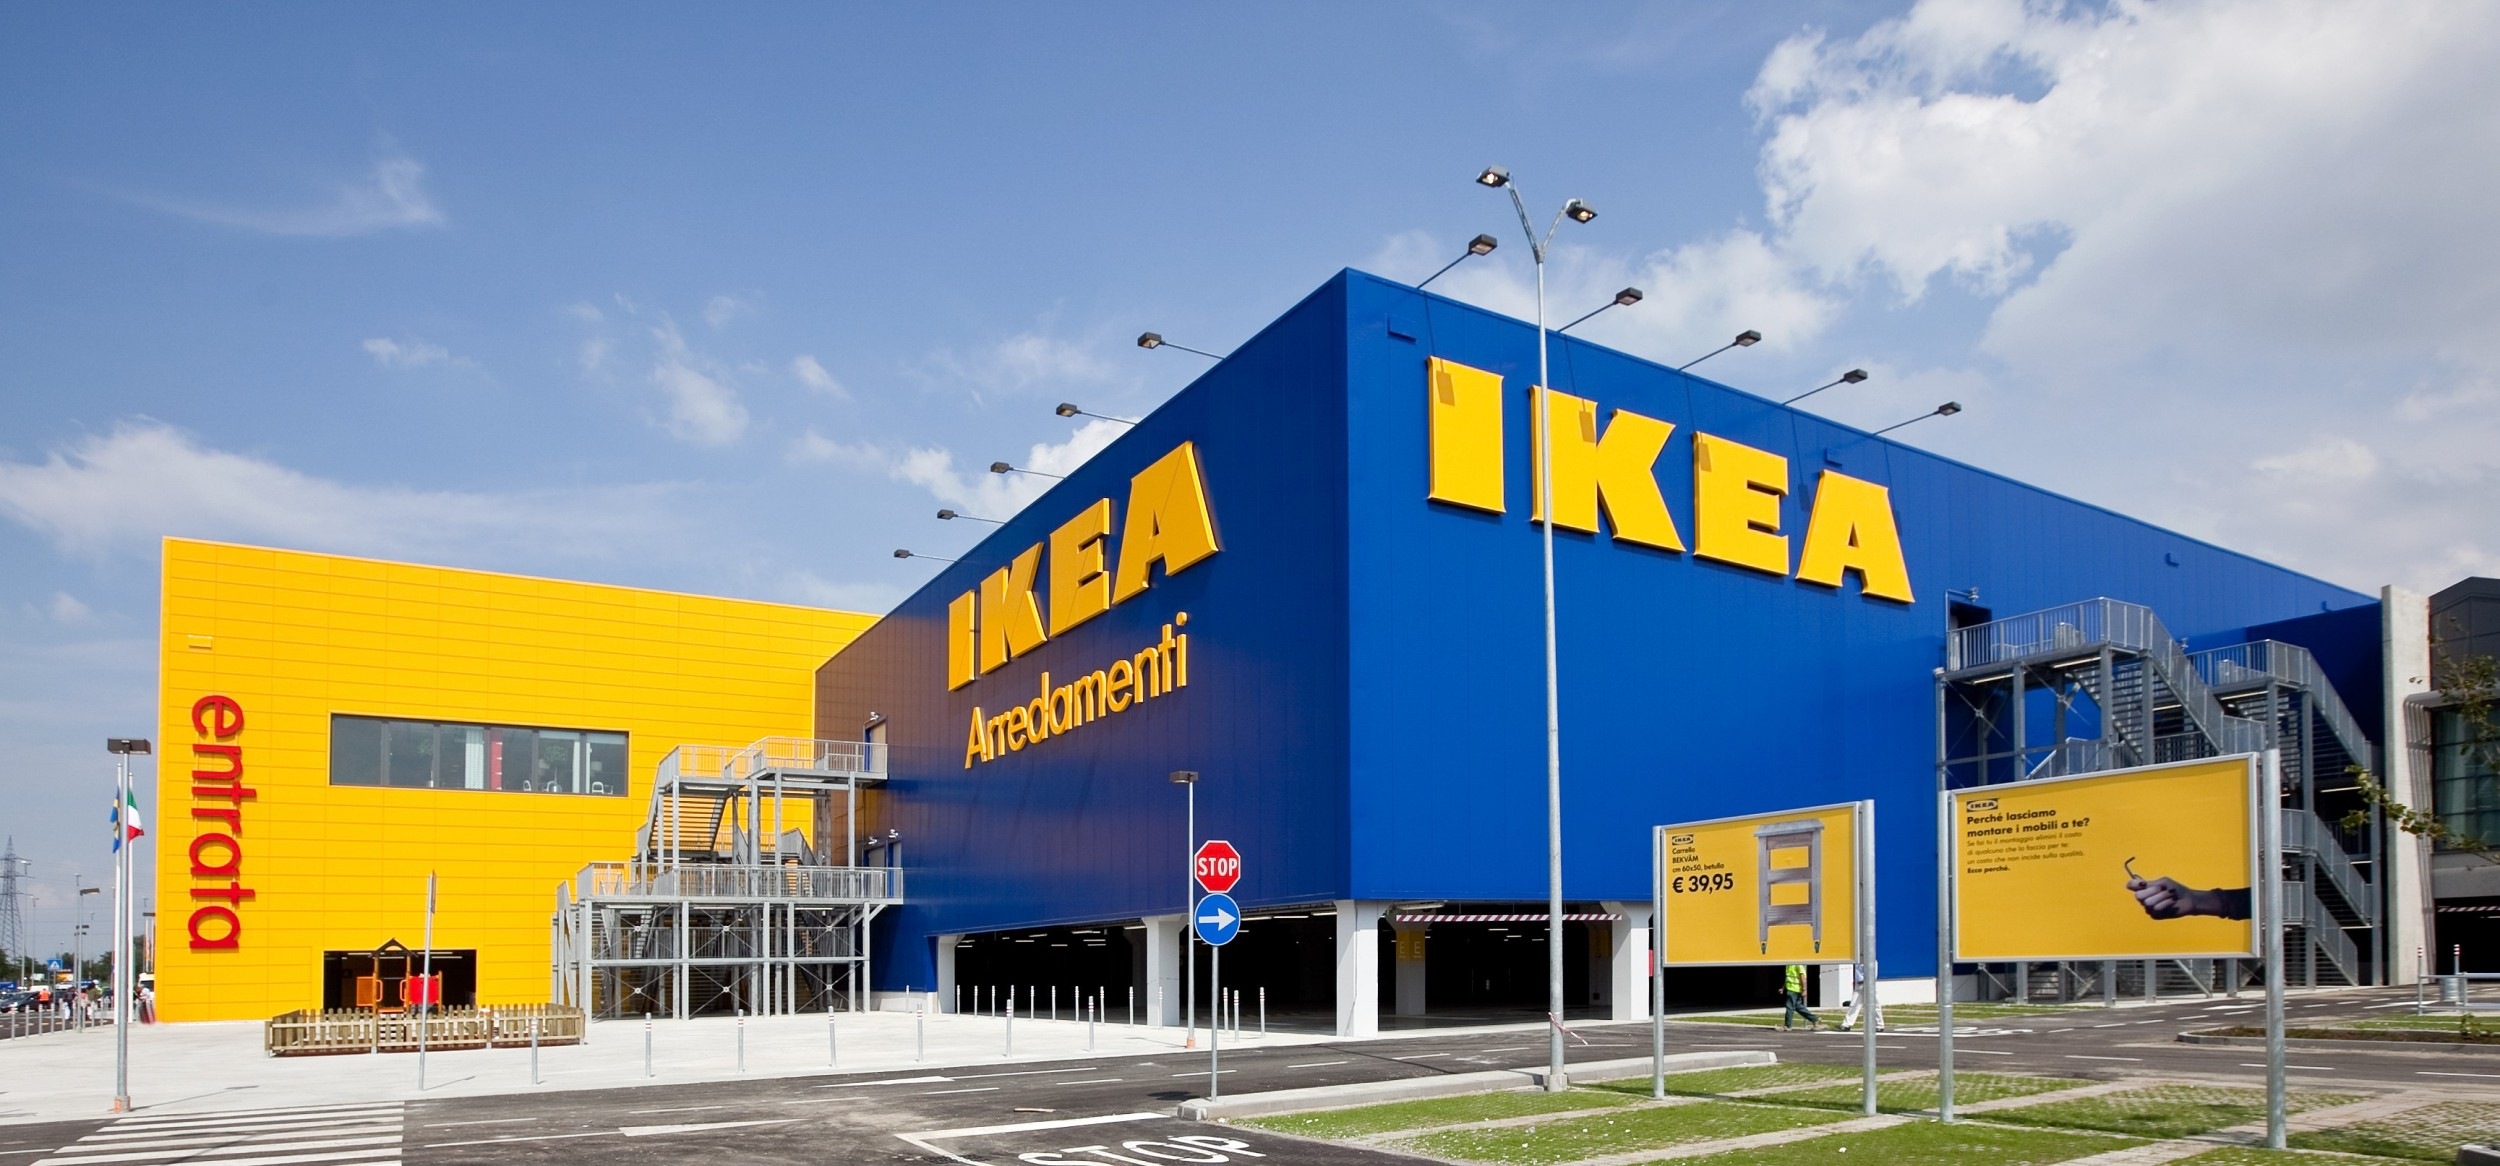 All'ikea come ad un concerto Rock YOUparti